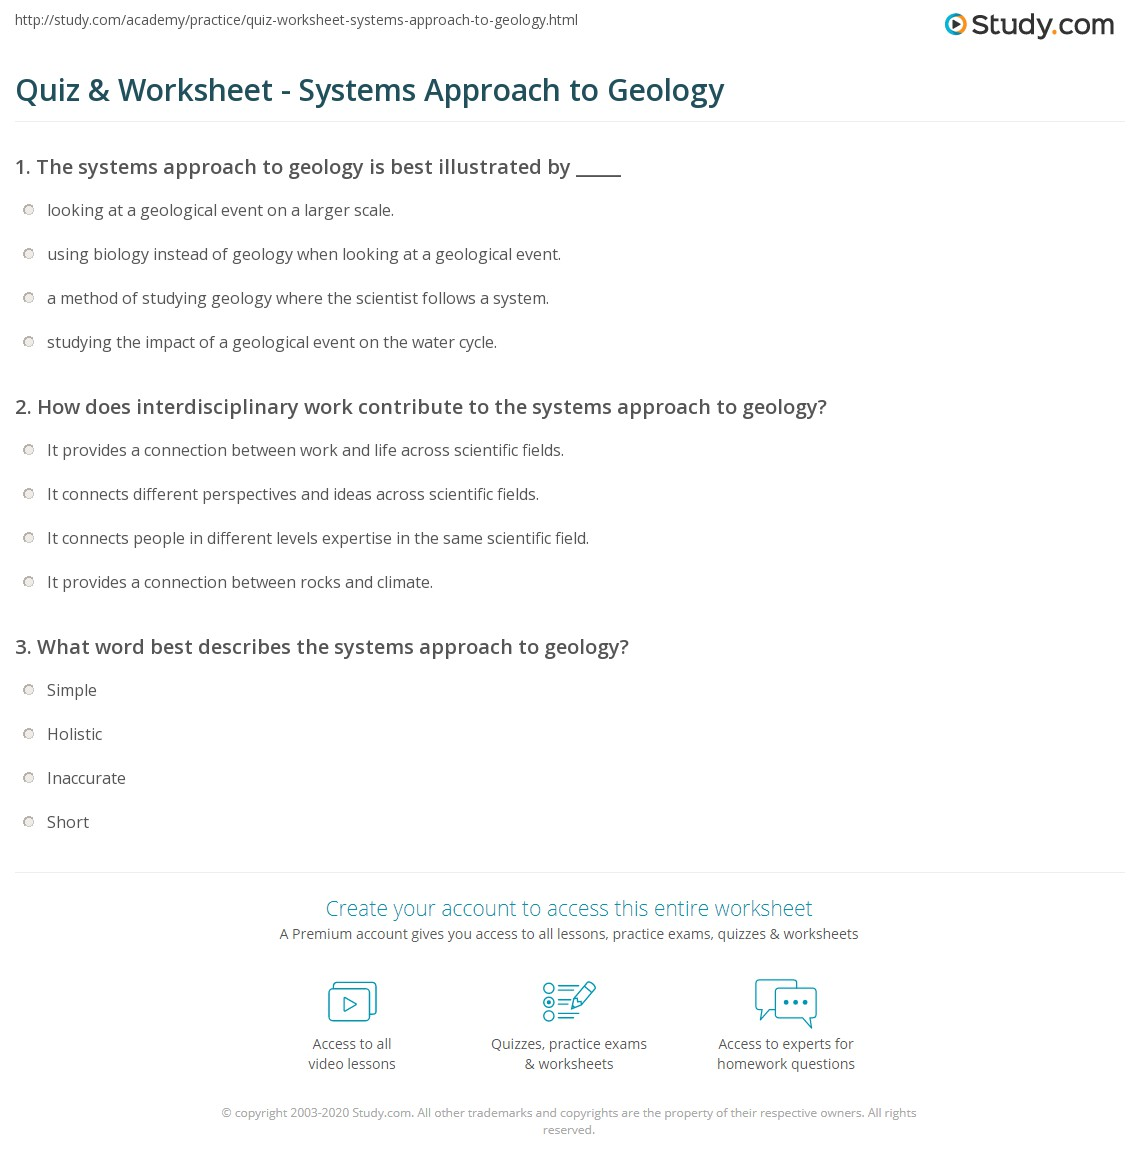 Reinforcement Worksheet Answers on scientific method worksheet answers